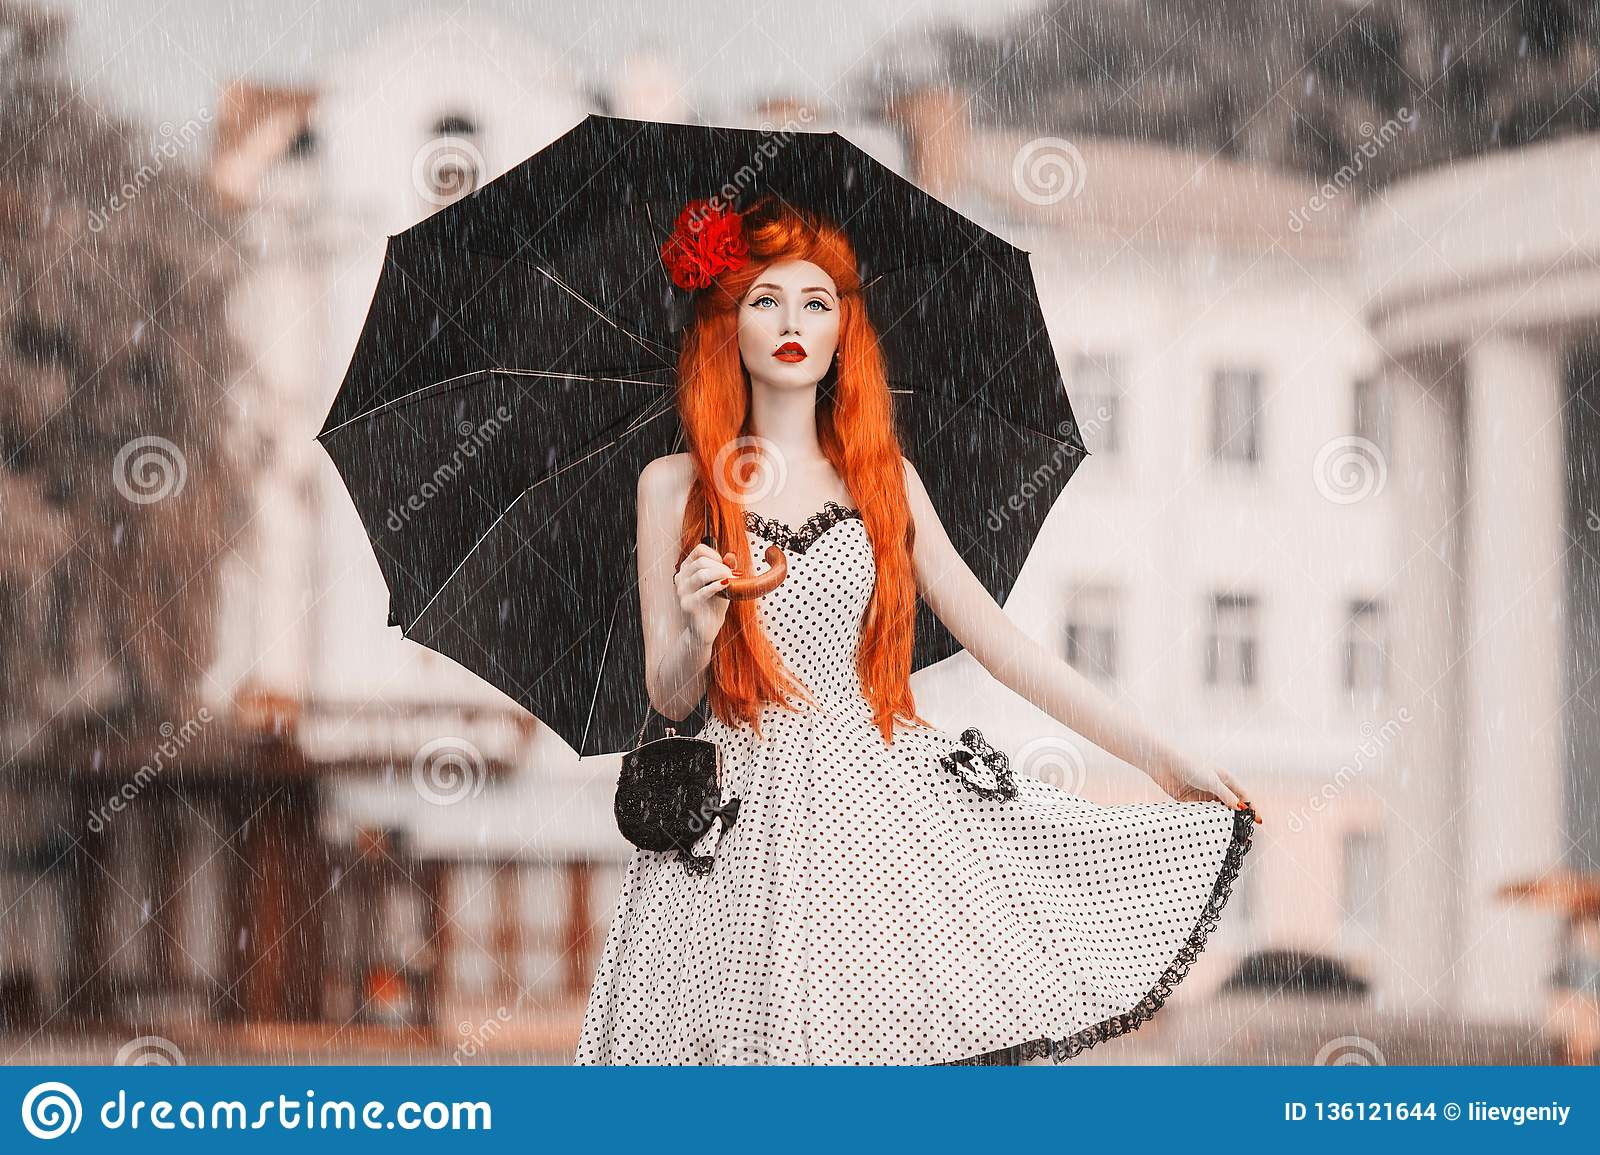 Winter weather. Autumn snow. Lonely unhappy girl in retro dress hold black umbrella. Raining in city. Wet umbrella against the